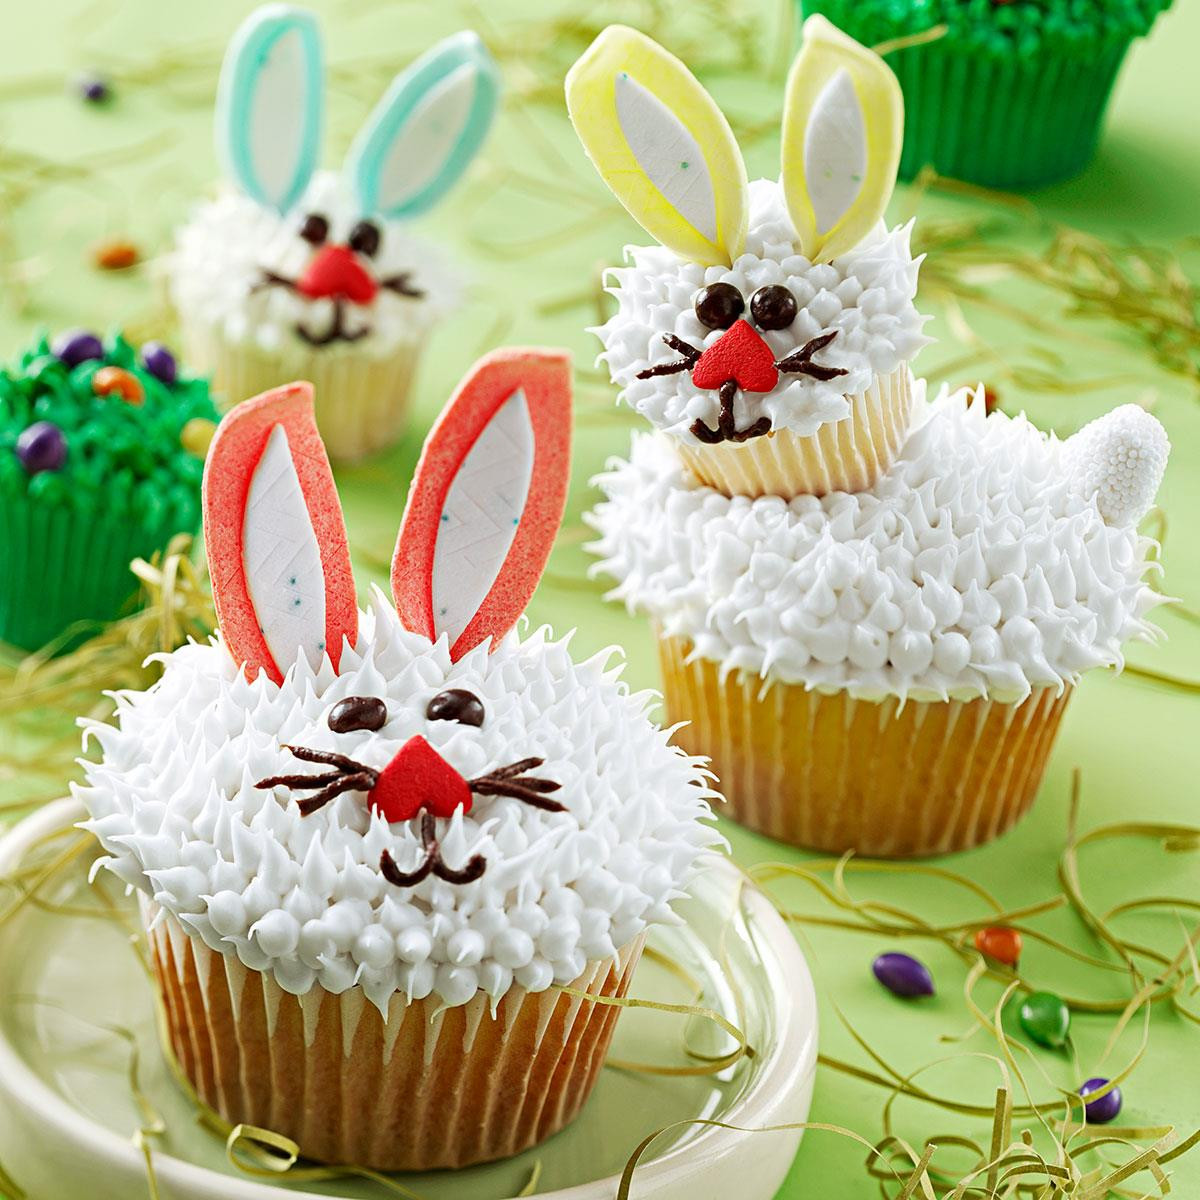 Easter Bunny Cupcakes the 20 Best Ideas for Easter Bunny Cupcakes Recipe